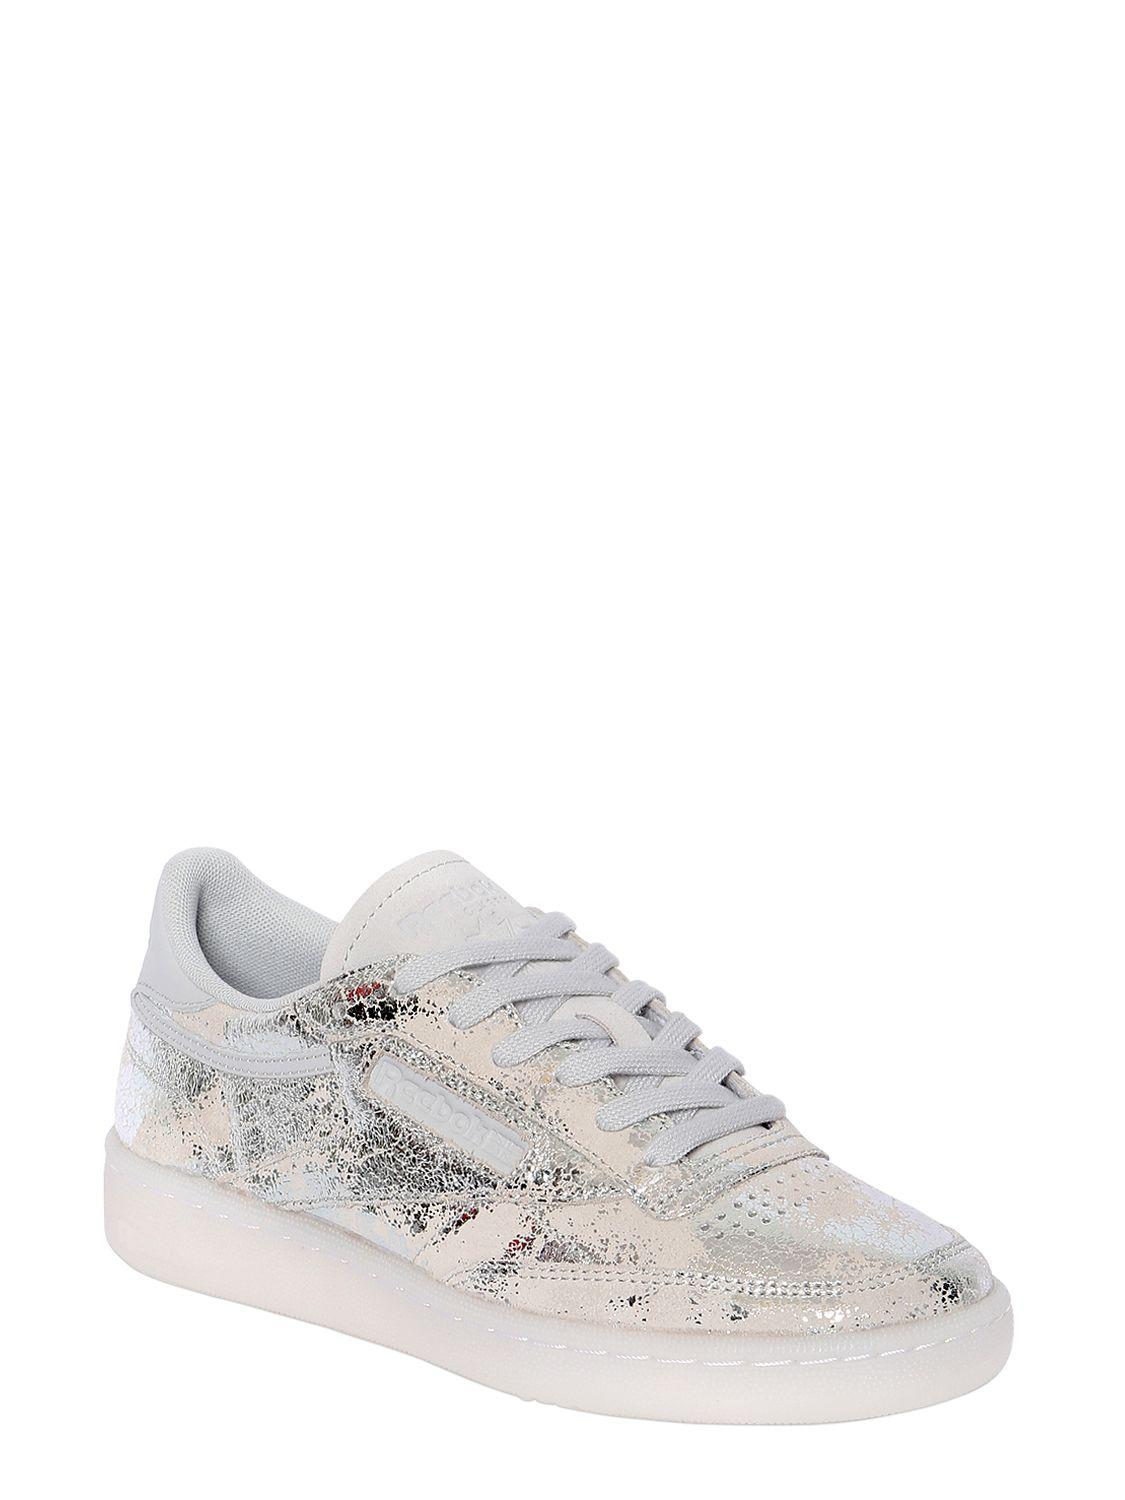 Reebok CLUB C 85 HYPE PRINTED LEATHER SNEAKERS CnOCW